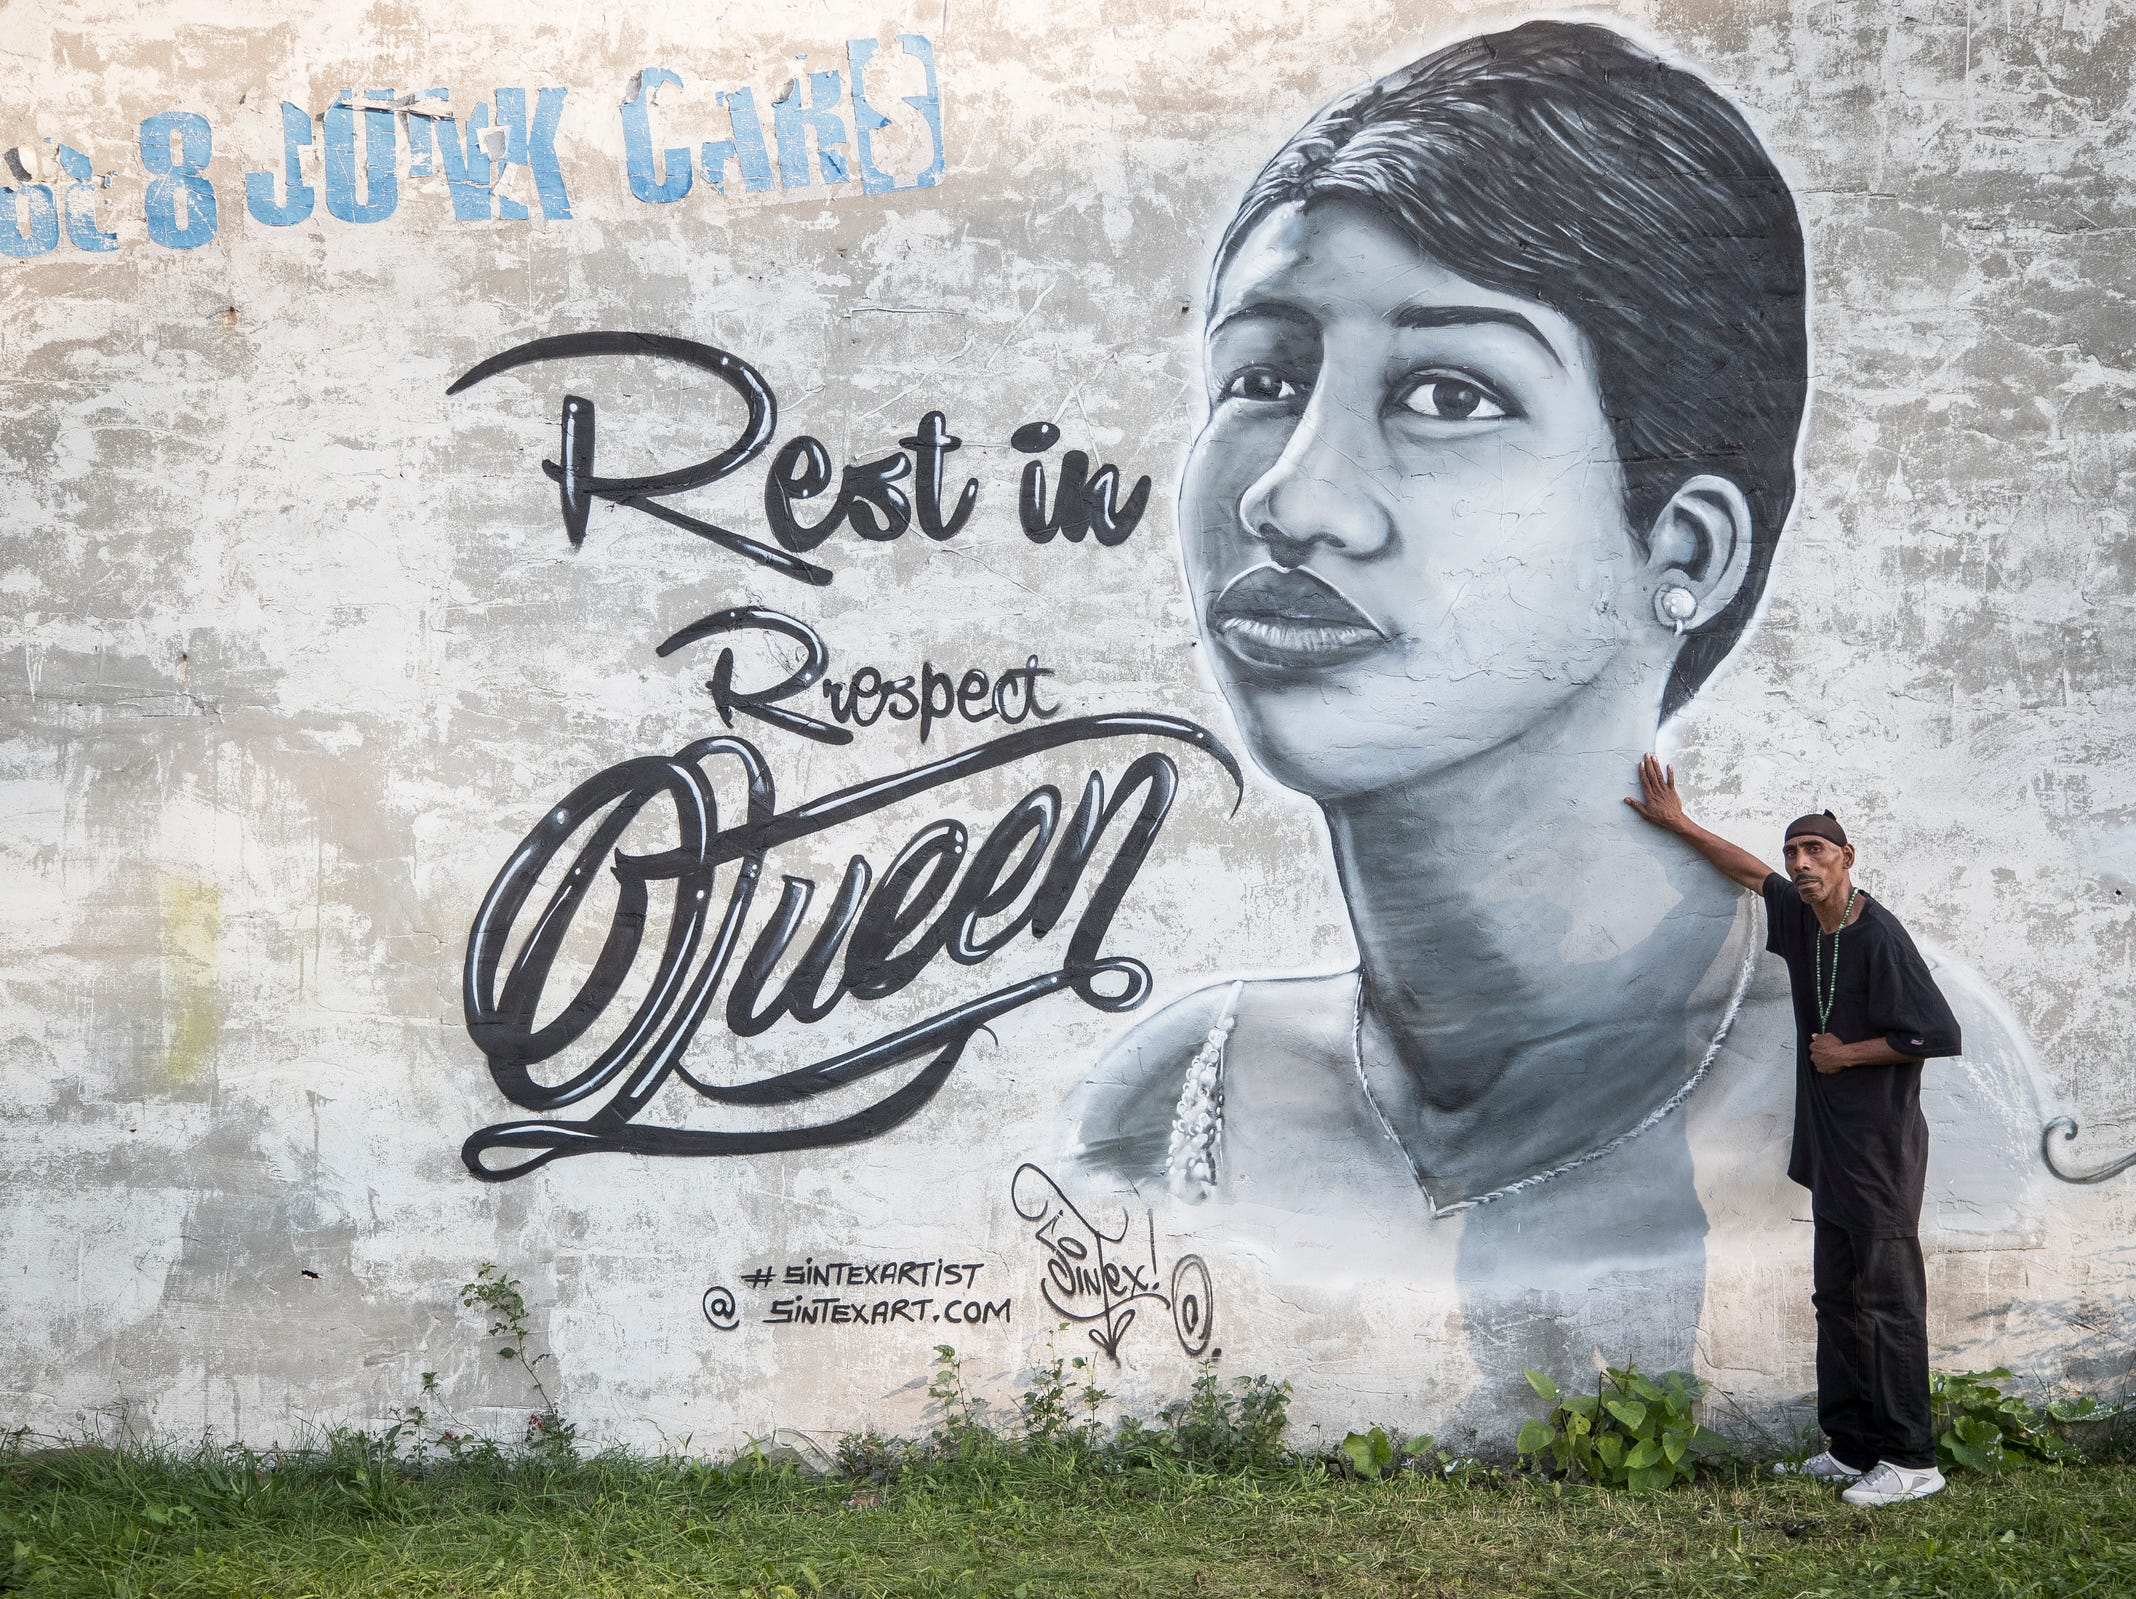 Kenneth Burns of Detroit poses for a photo in front of a mural painted by artist Sintex honoring Aretha Franklin near Linwood Street and Euclid Street in Detroit, Tuesday, August 21, 2018.